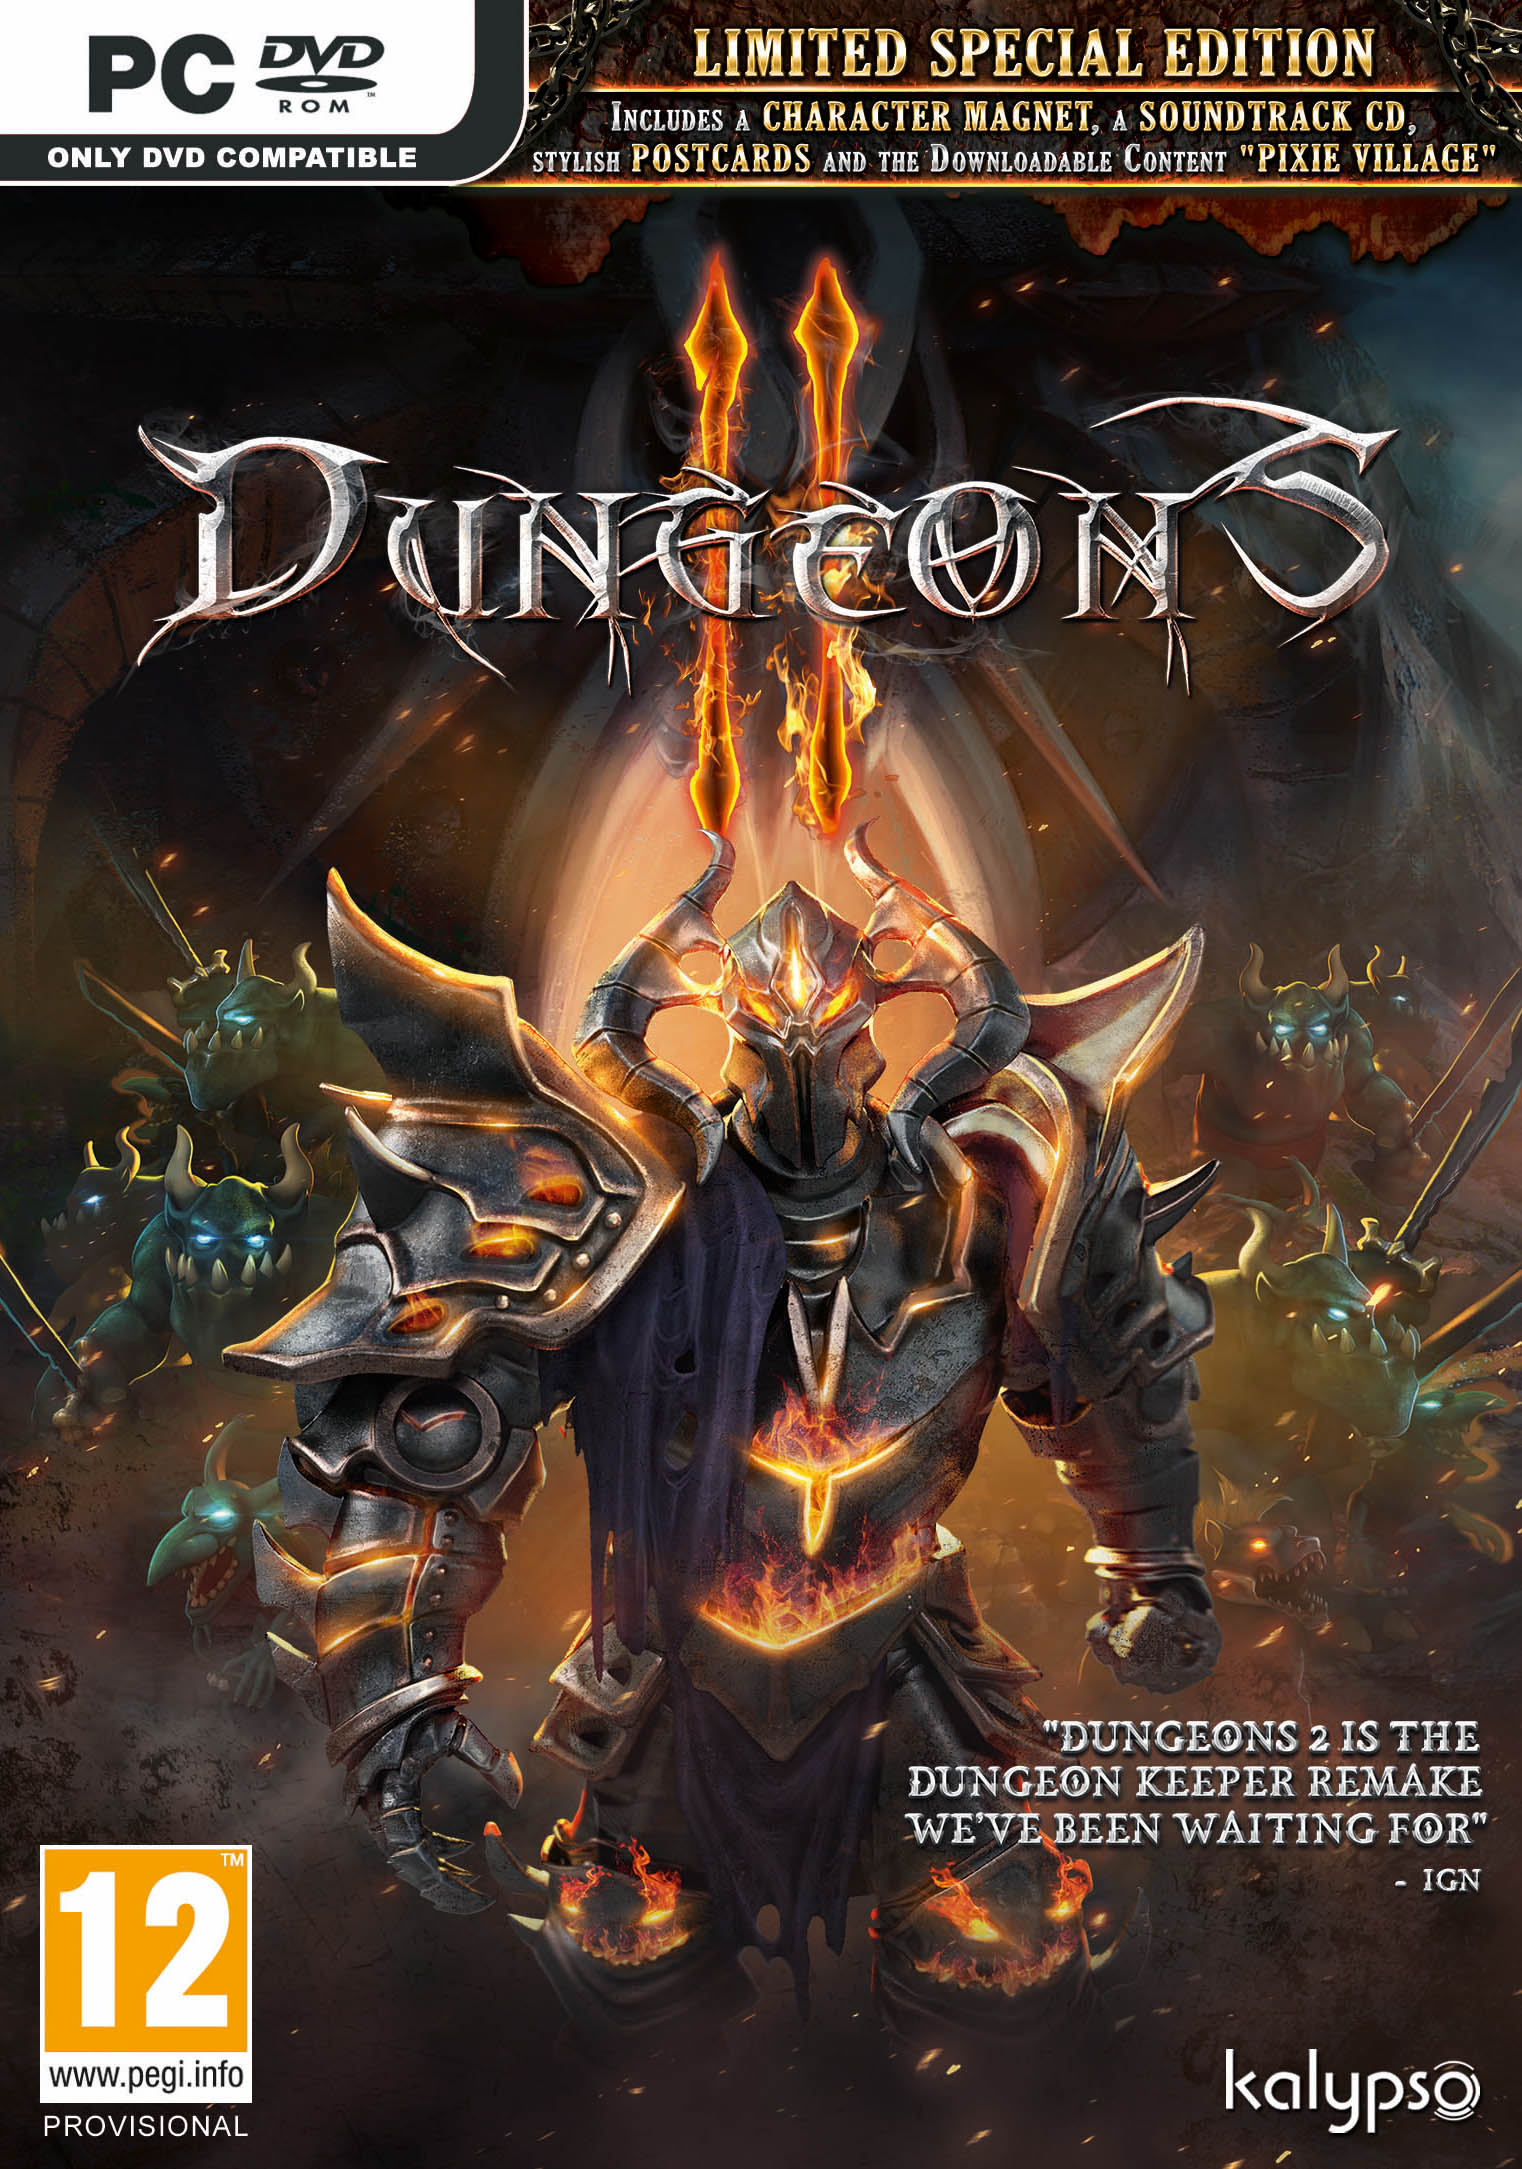 Box art - Dungeons 2